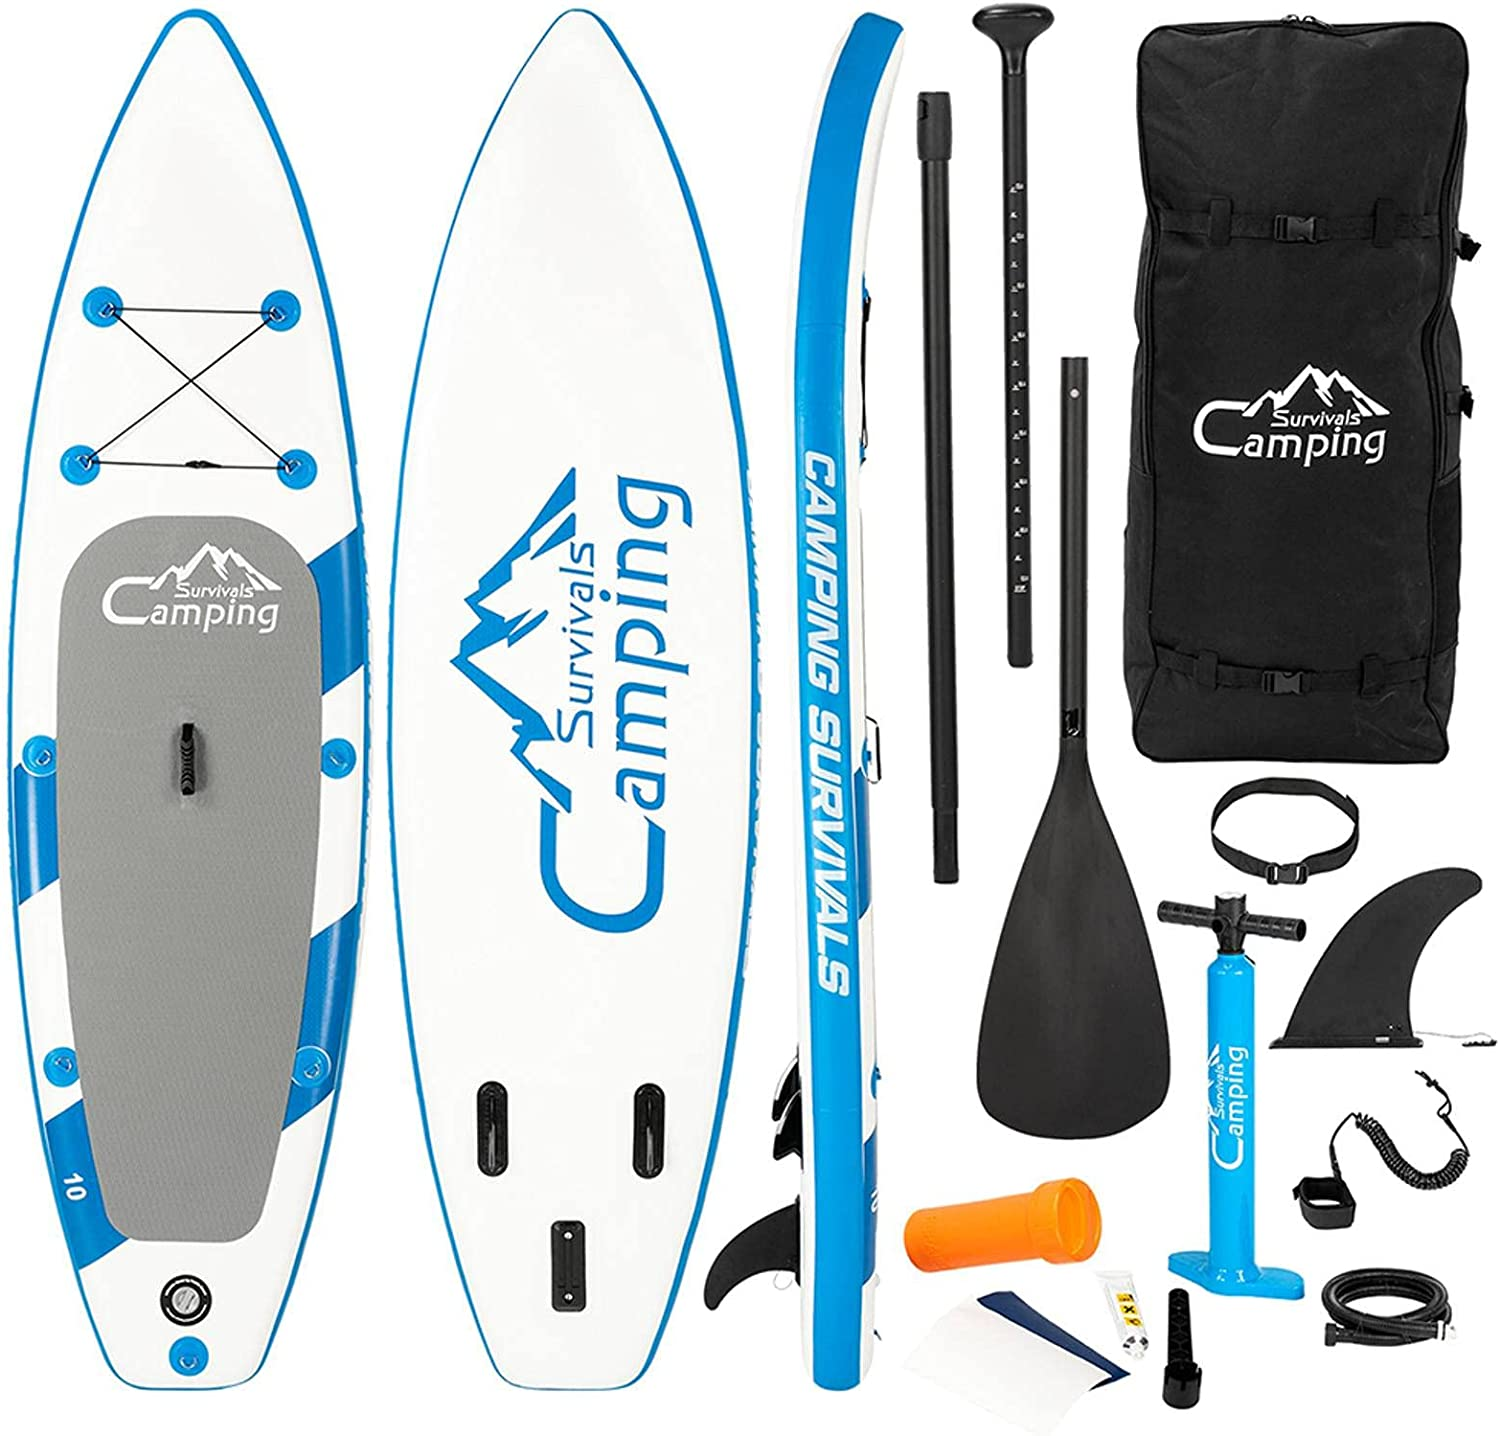 NC 10 Low price feet Paddle Board Surfboard Max 84% OFF Kayak Inflatable Adjusta Youth